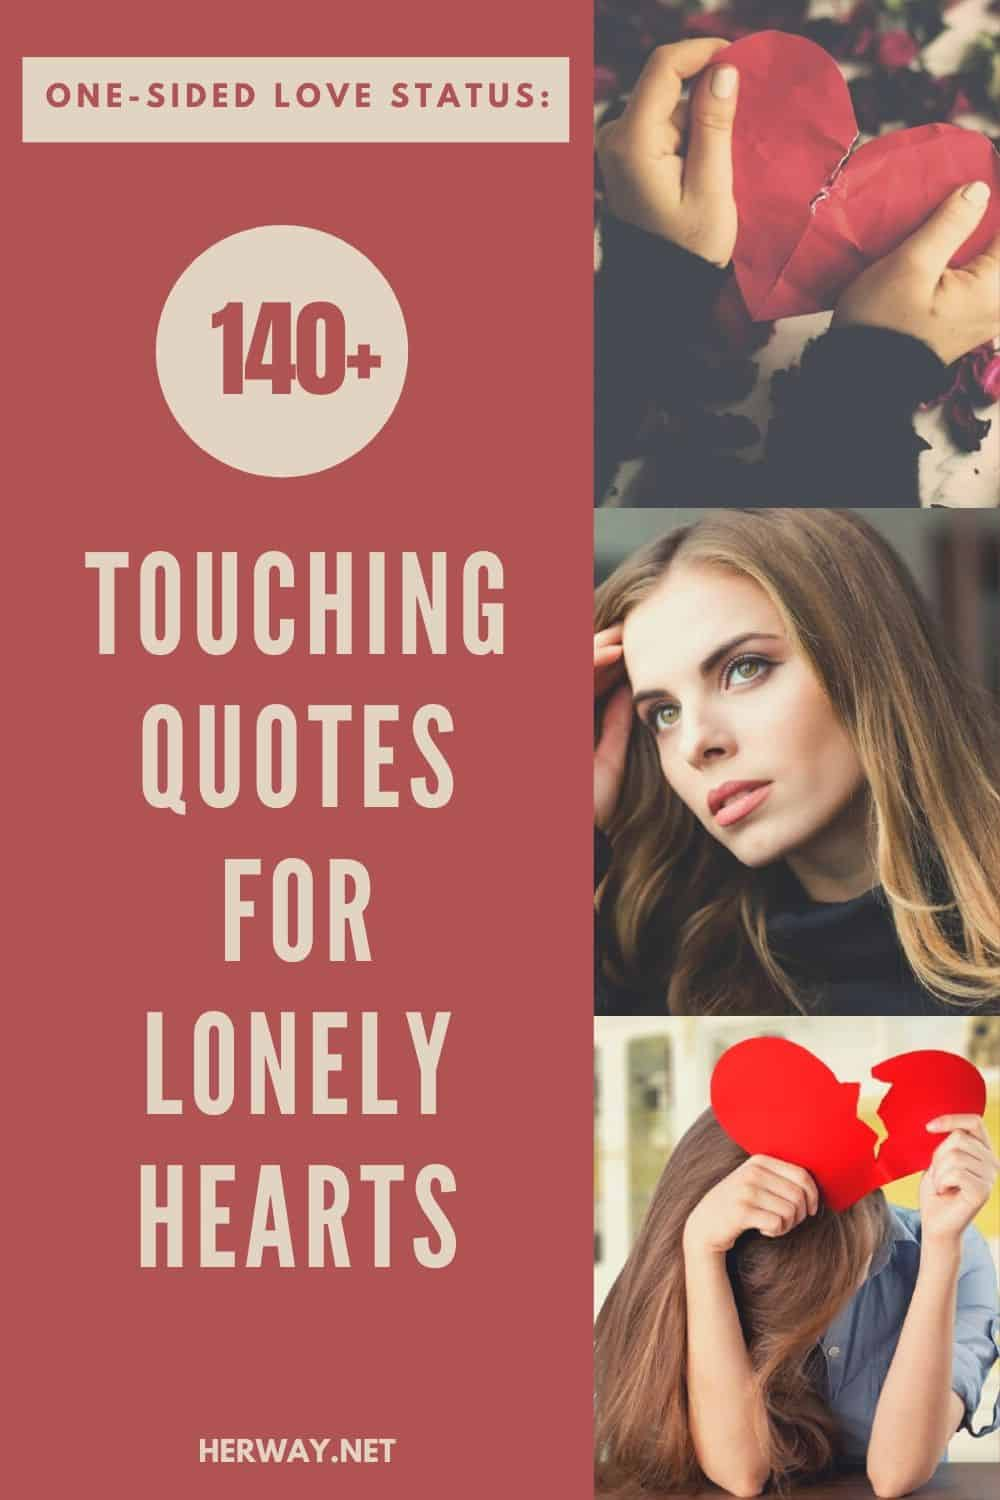 One-Sided Love Status: 140+ Touching Quotes For Lonely Hearts pinterest